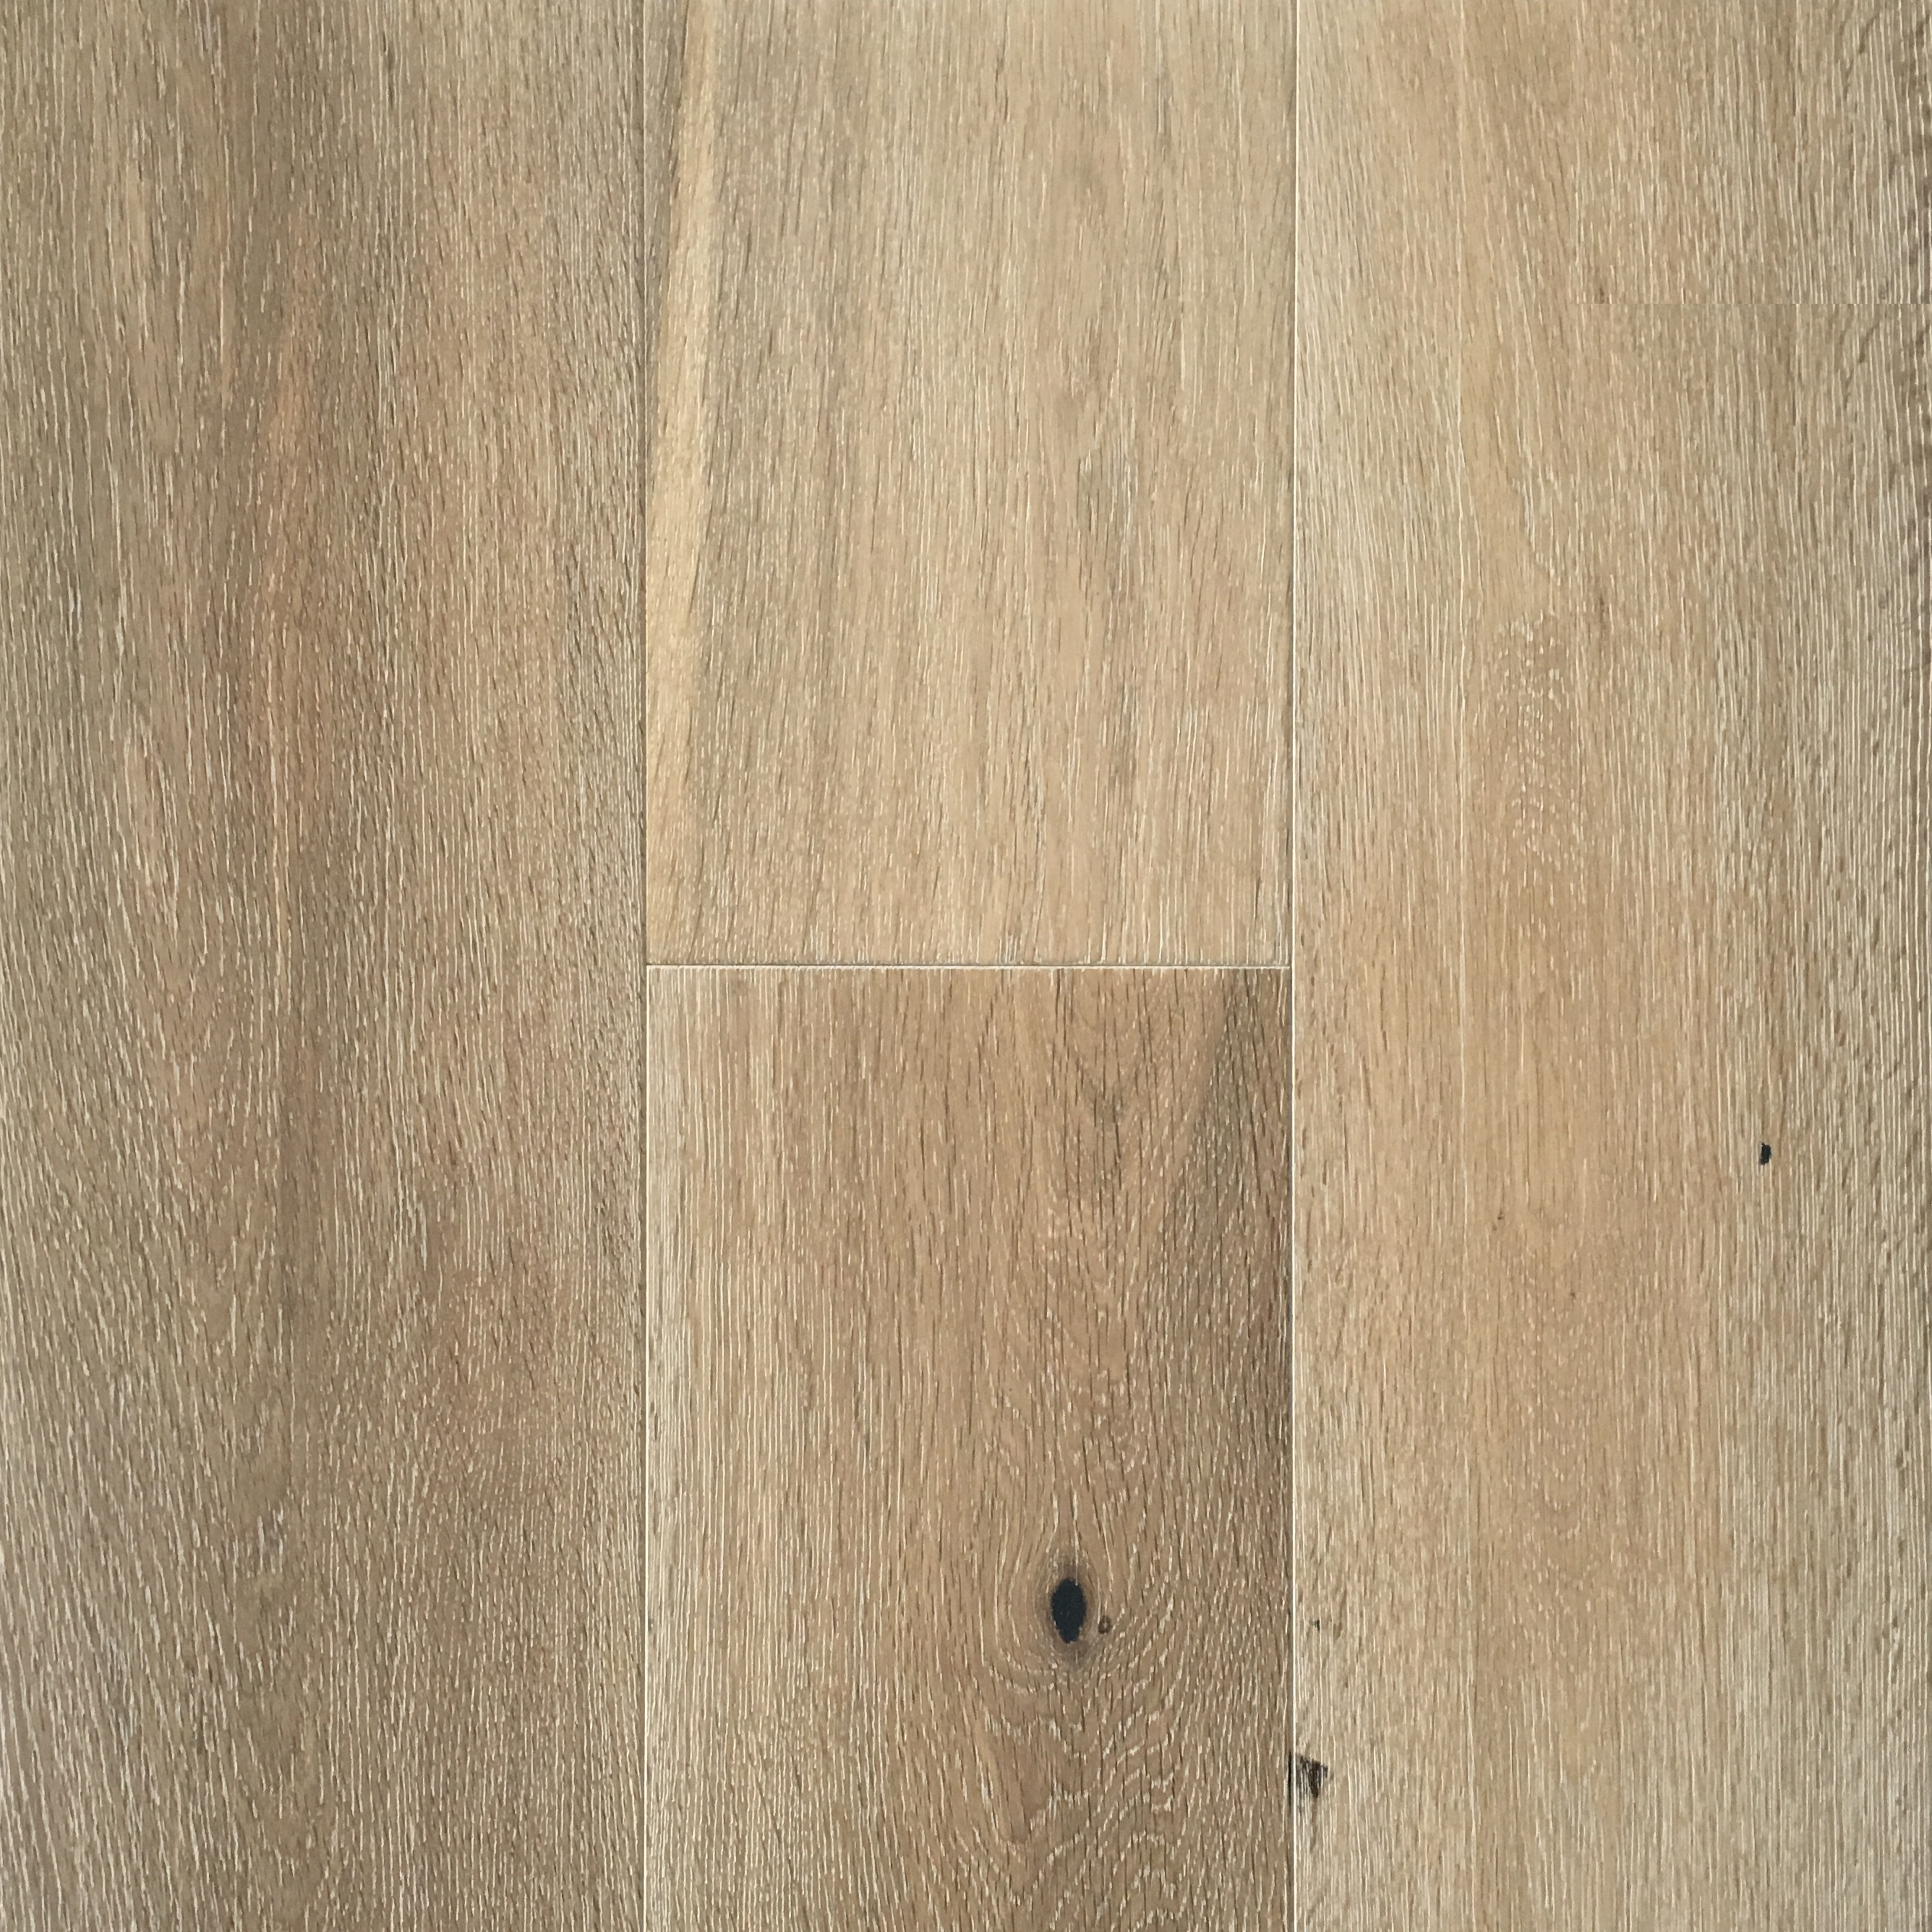 1 Engineered 9 European Oak Wear Layer 6mm